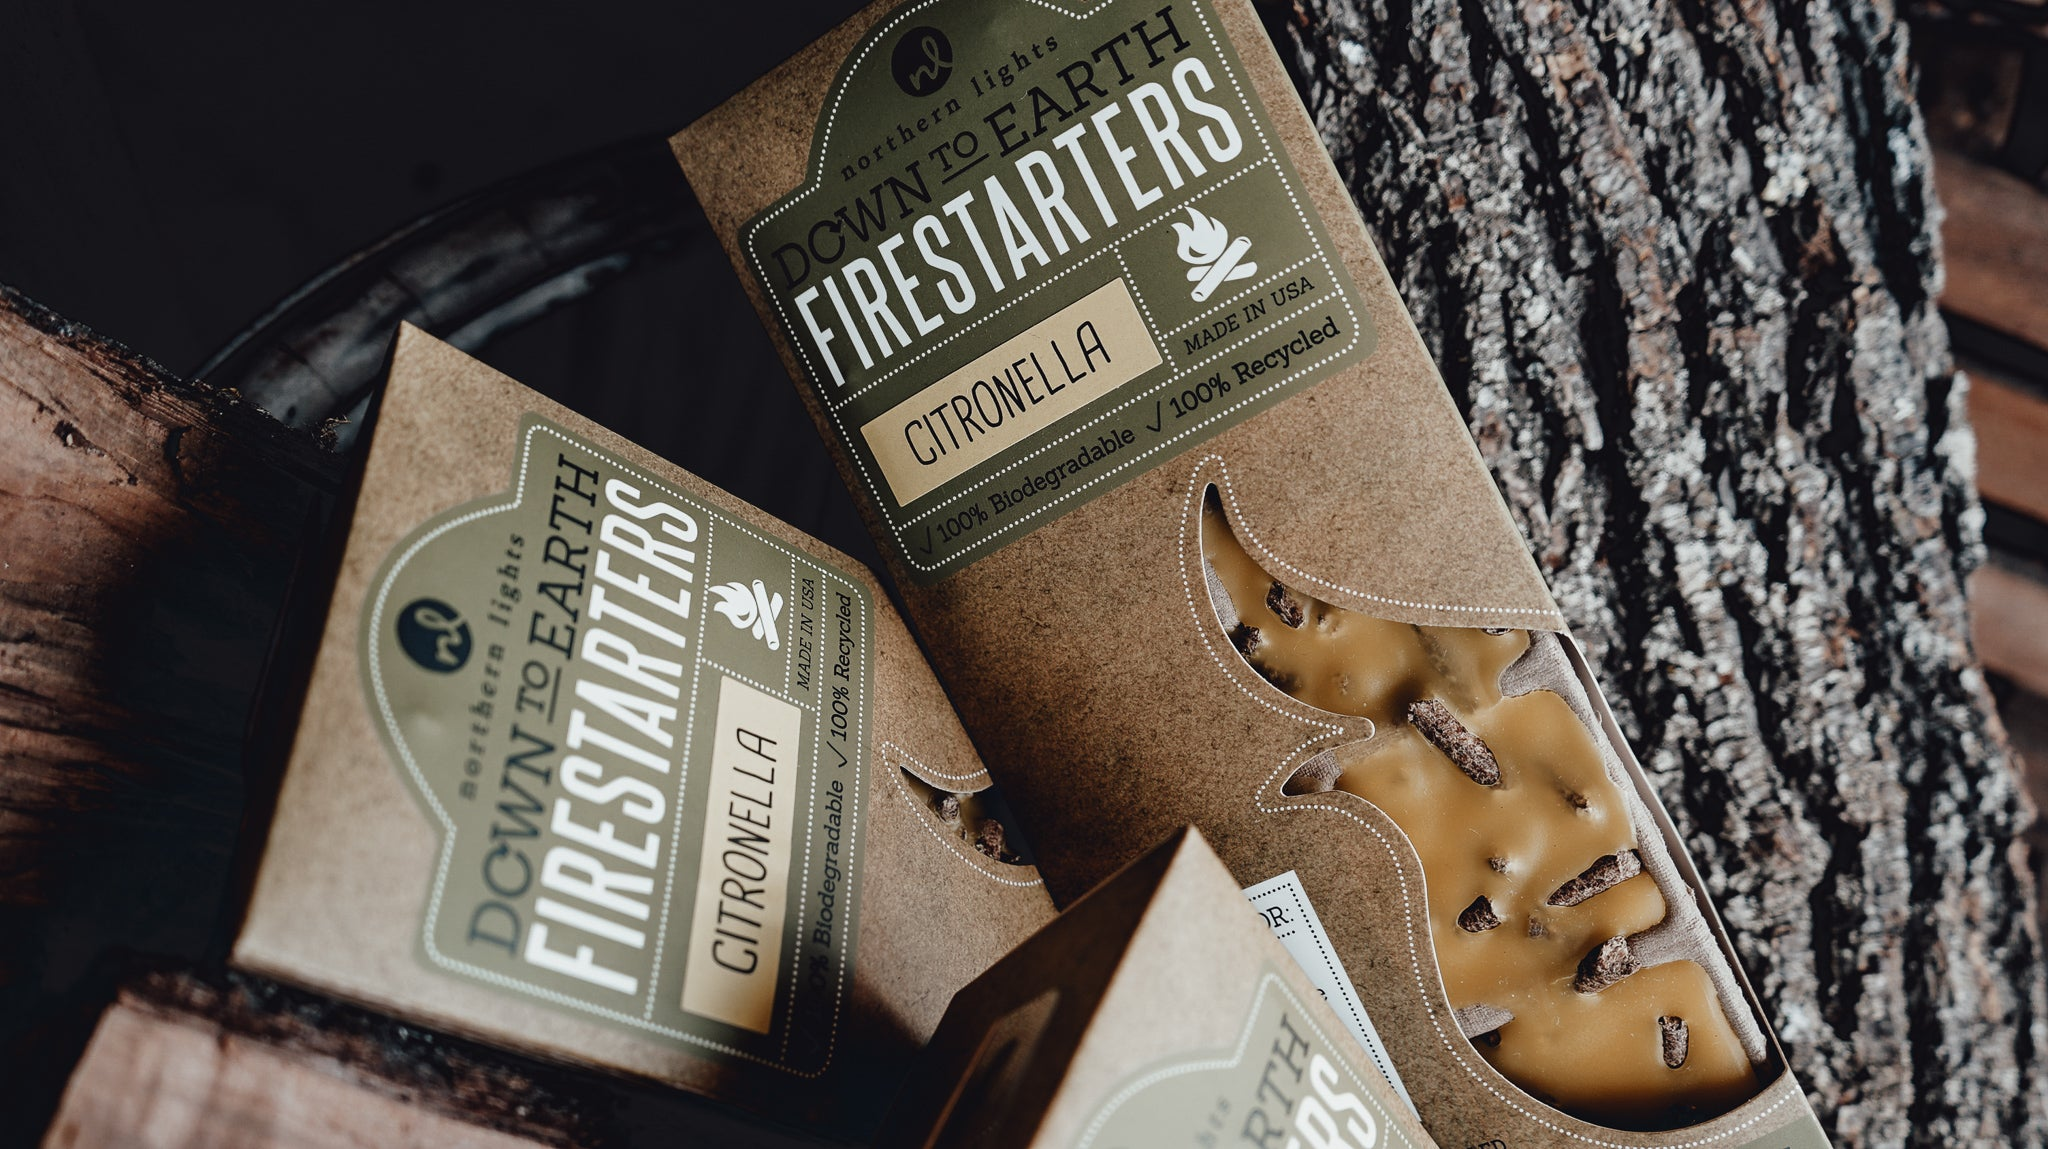 Northern Lights Down To Earth Fire Starters - Provisions, LLC